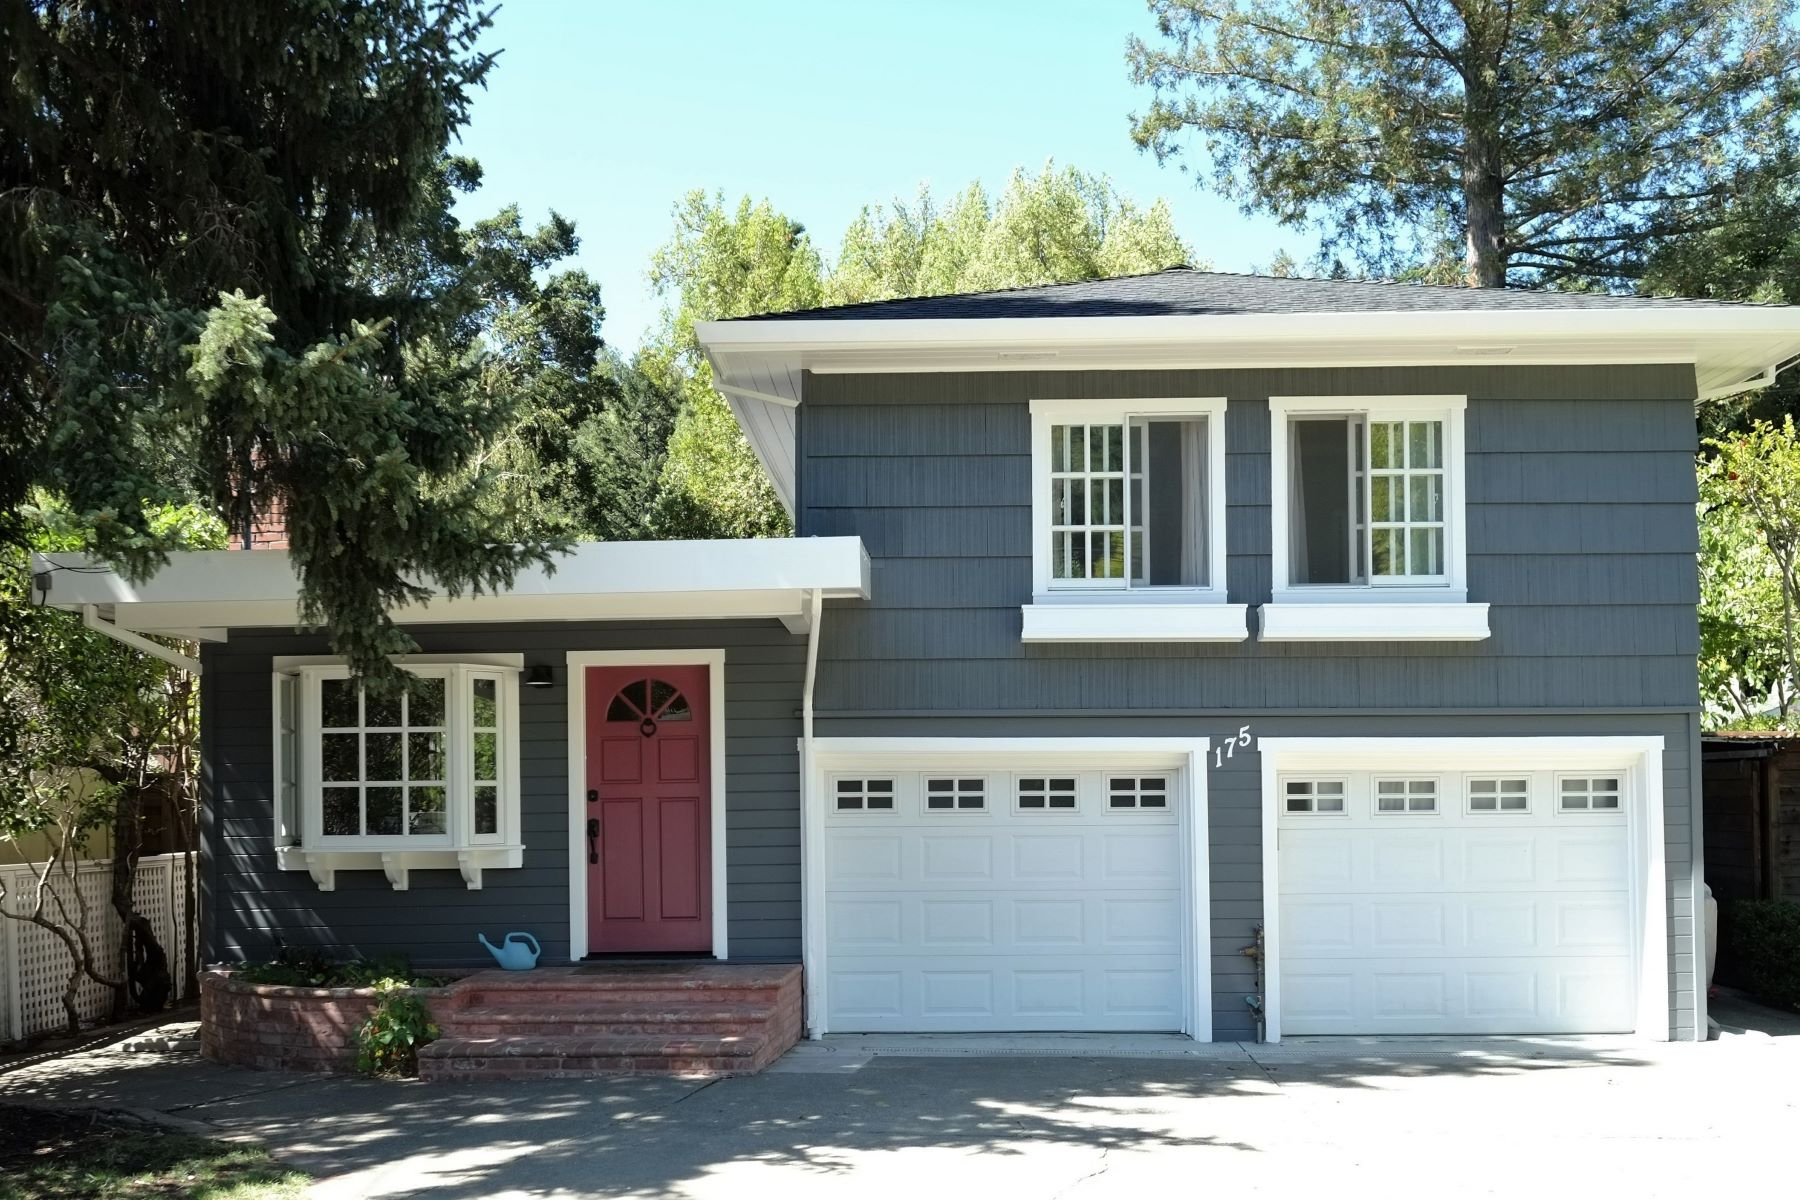 Single Family Homes for Sale at Vintage Bliss in the flats of San Anselmo 175 The Alameda San Anselmo, California 94960 United States